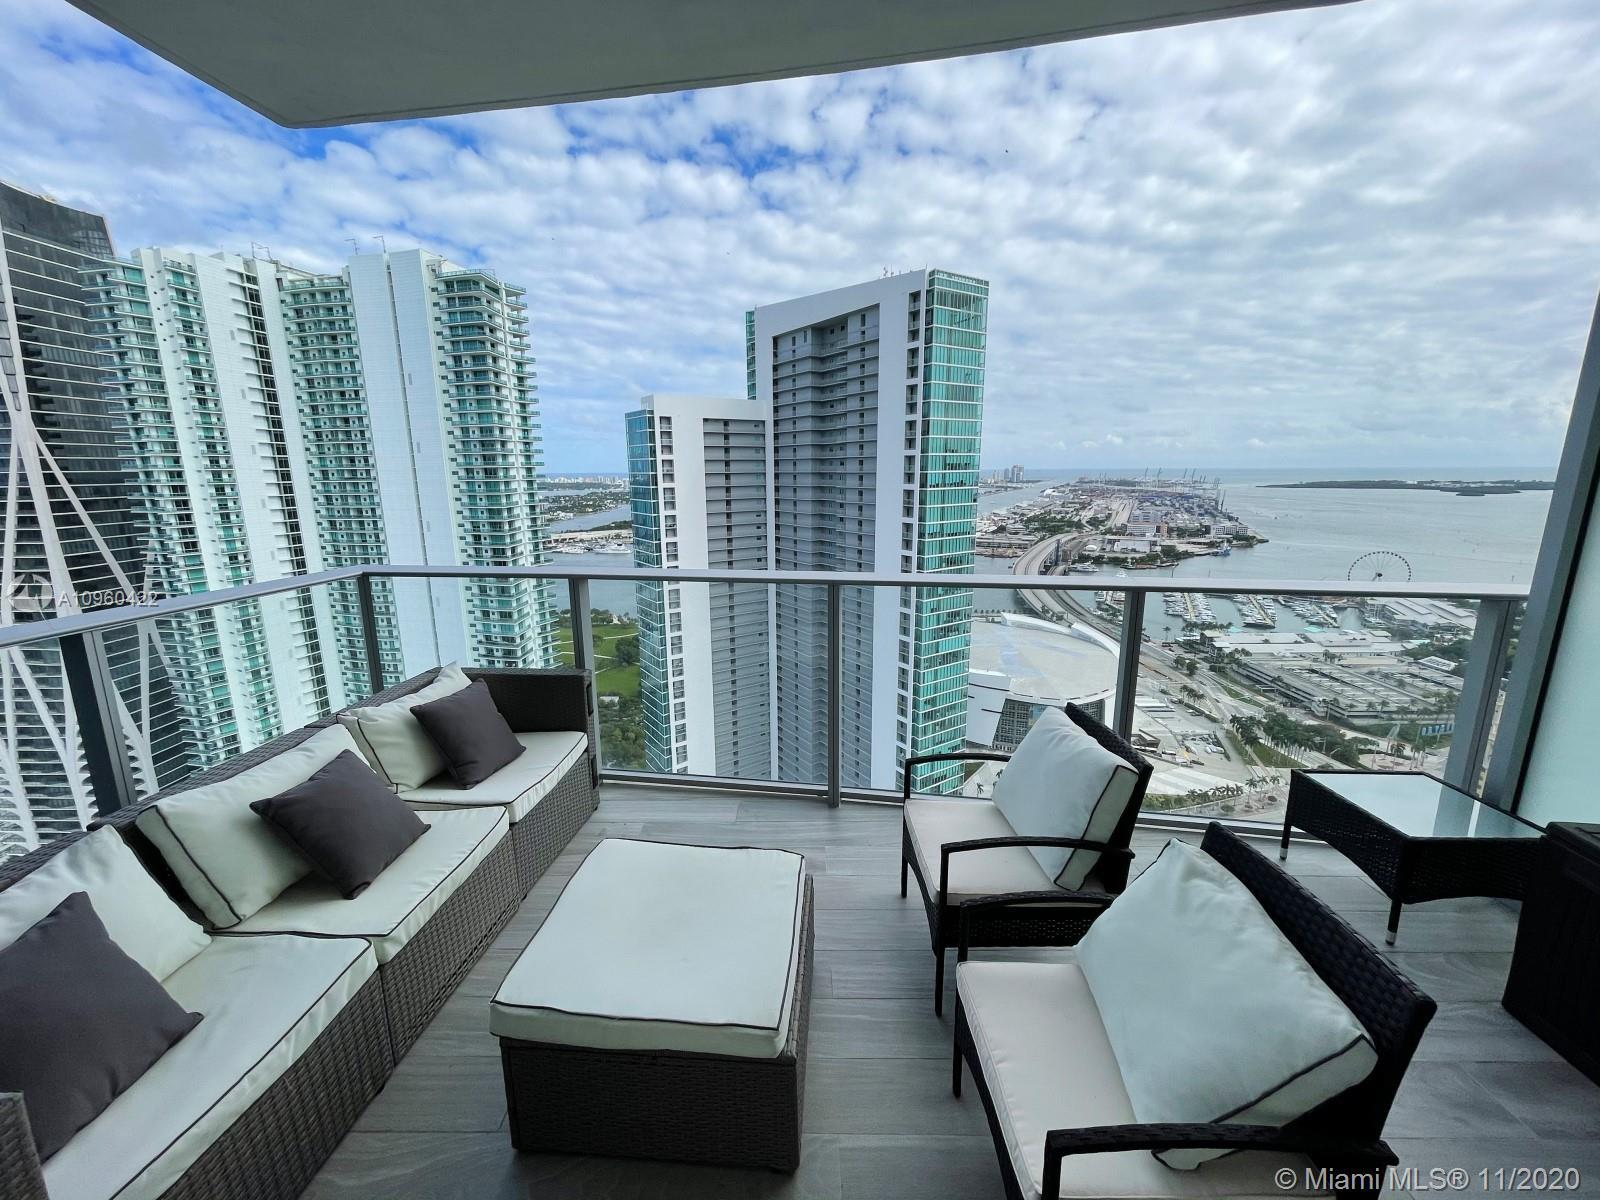 Spectacular 1,690 SQFT 2 Beds + Den + 3 Full Baths with water views residence! Subzero refrigerator